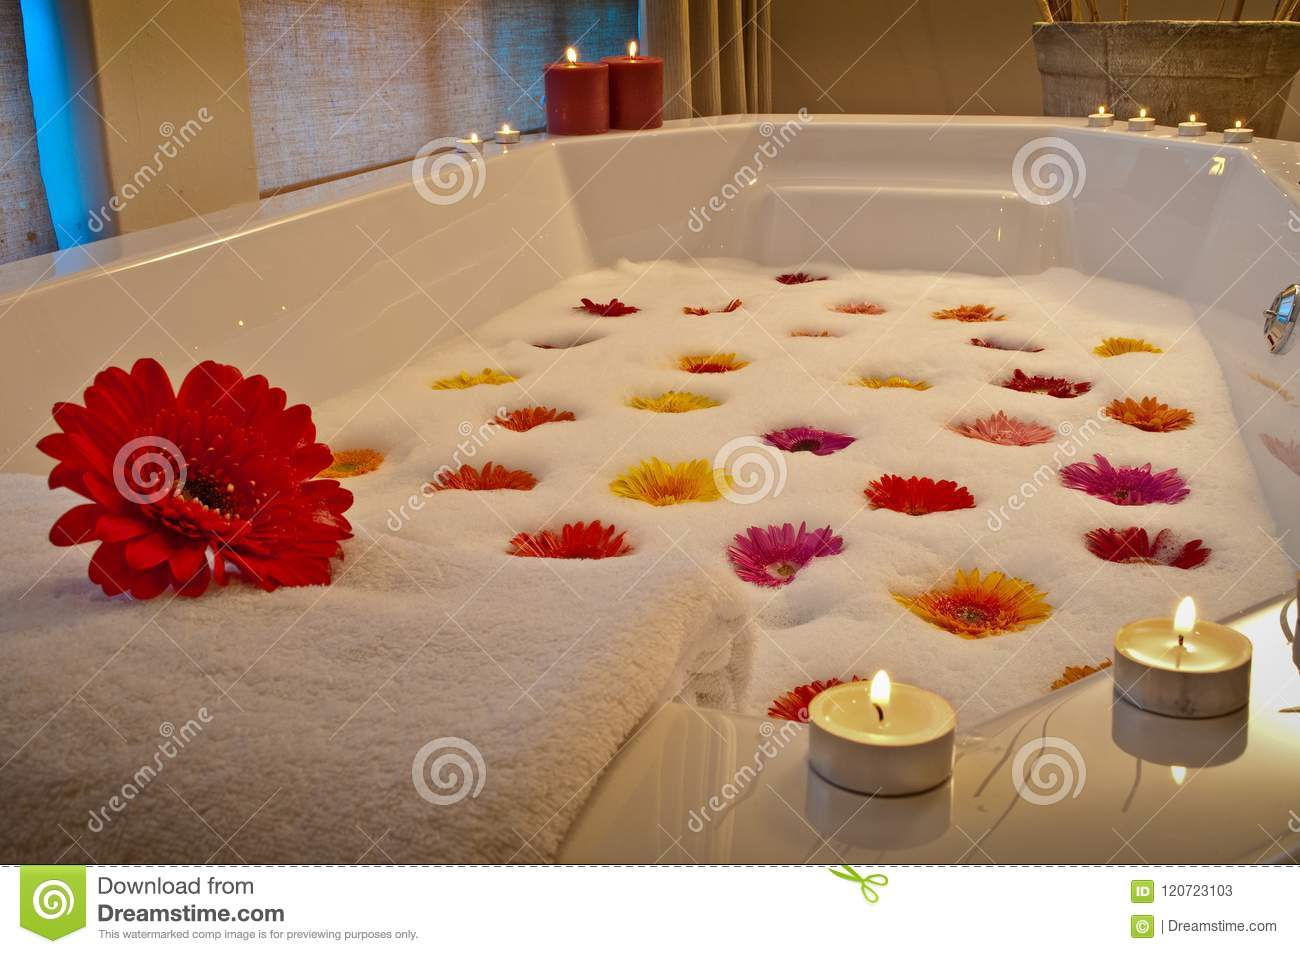 Candlelit Bath In Health Spa With Flowers Stock Image - Image of ...